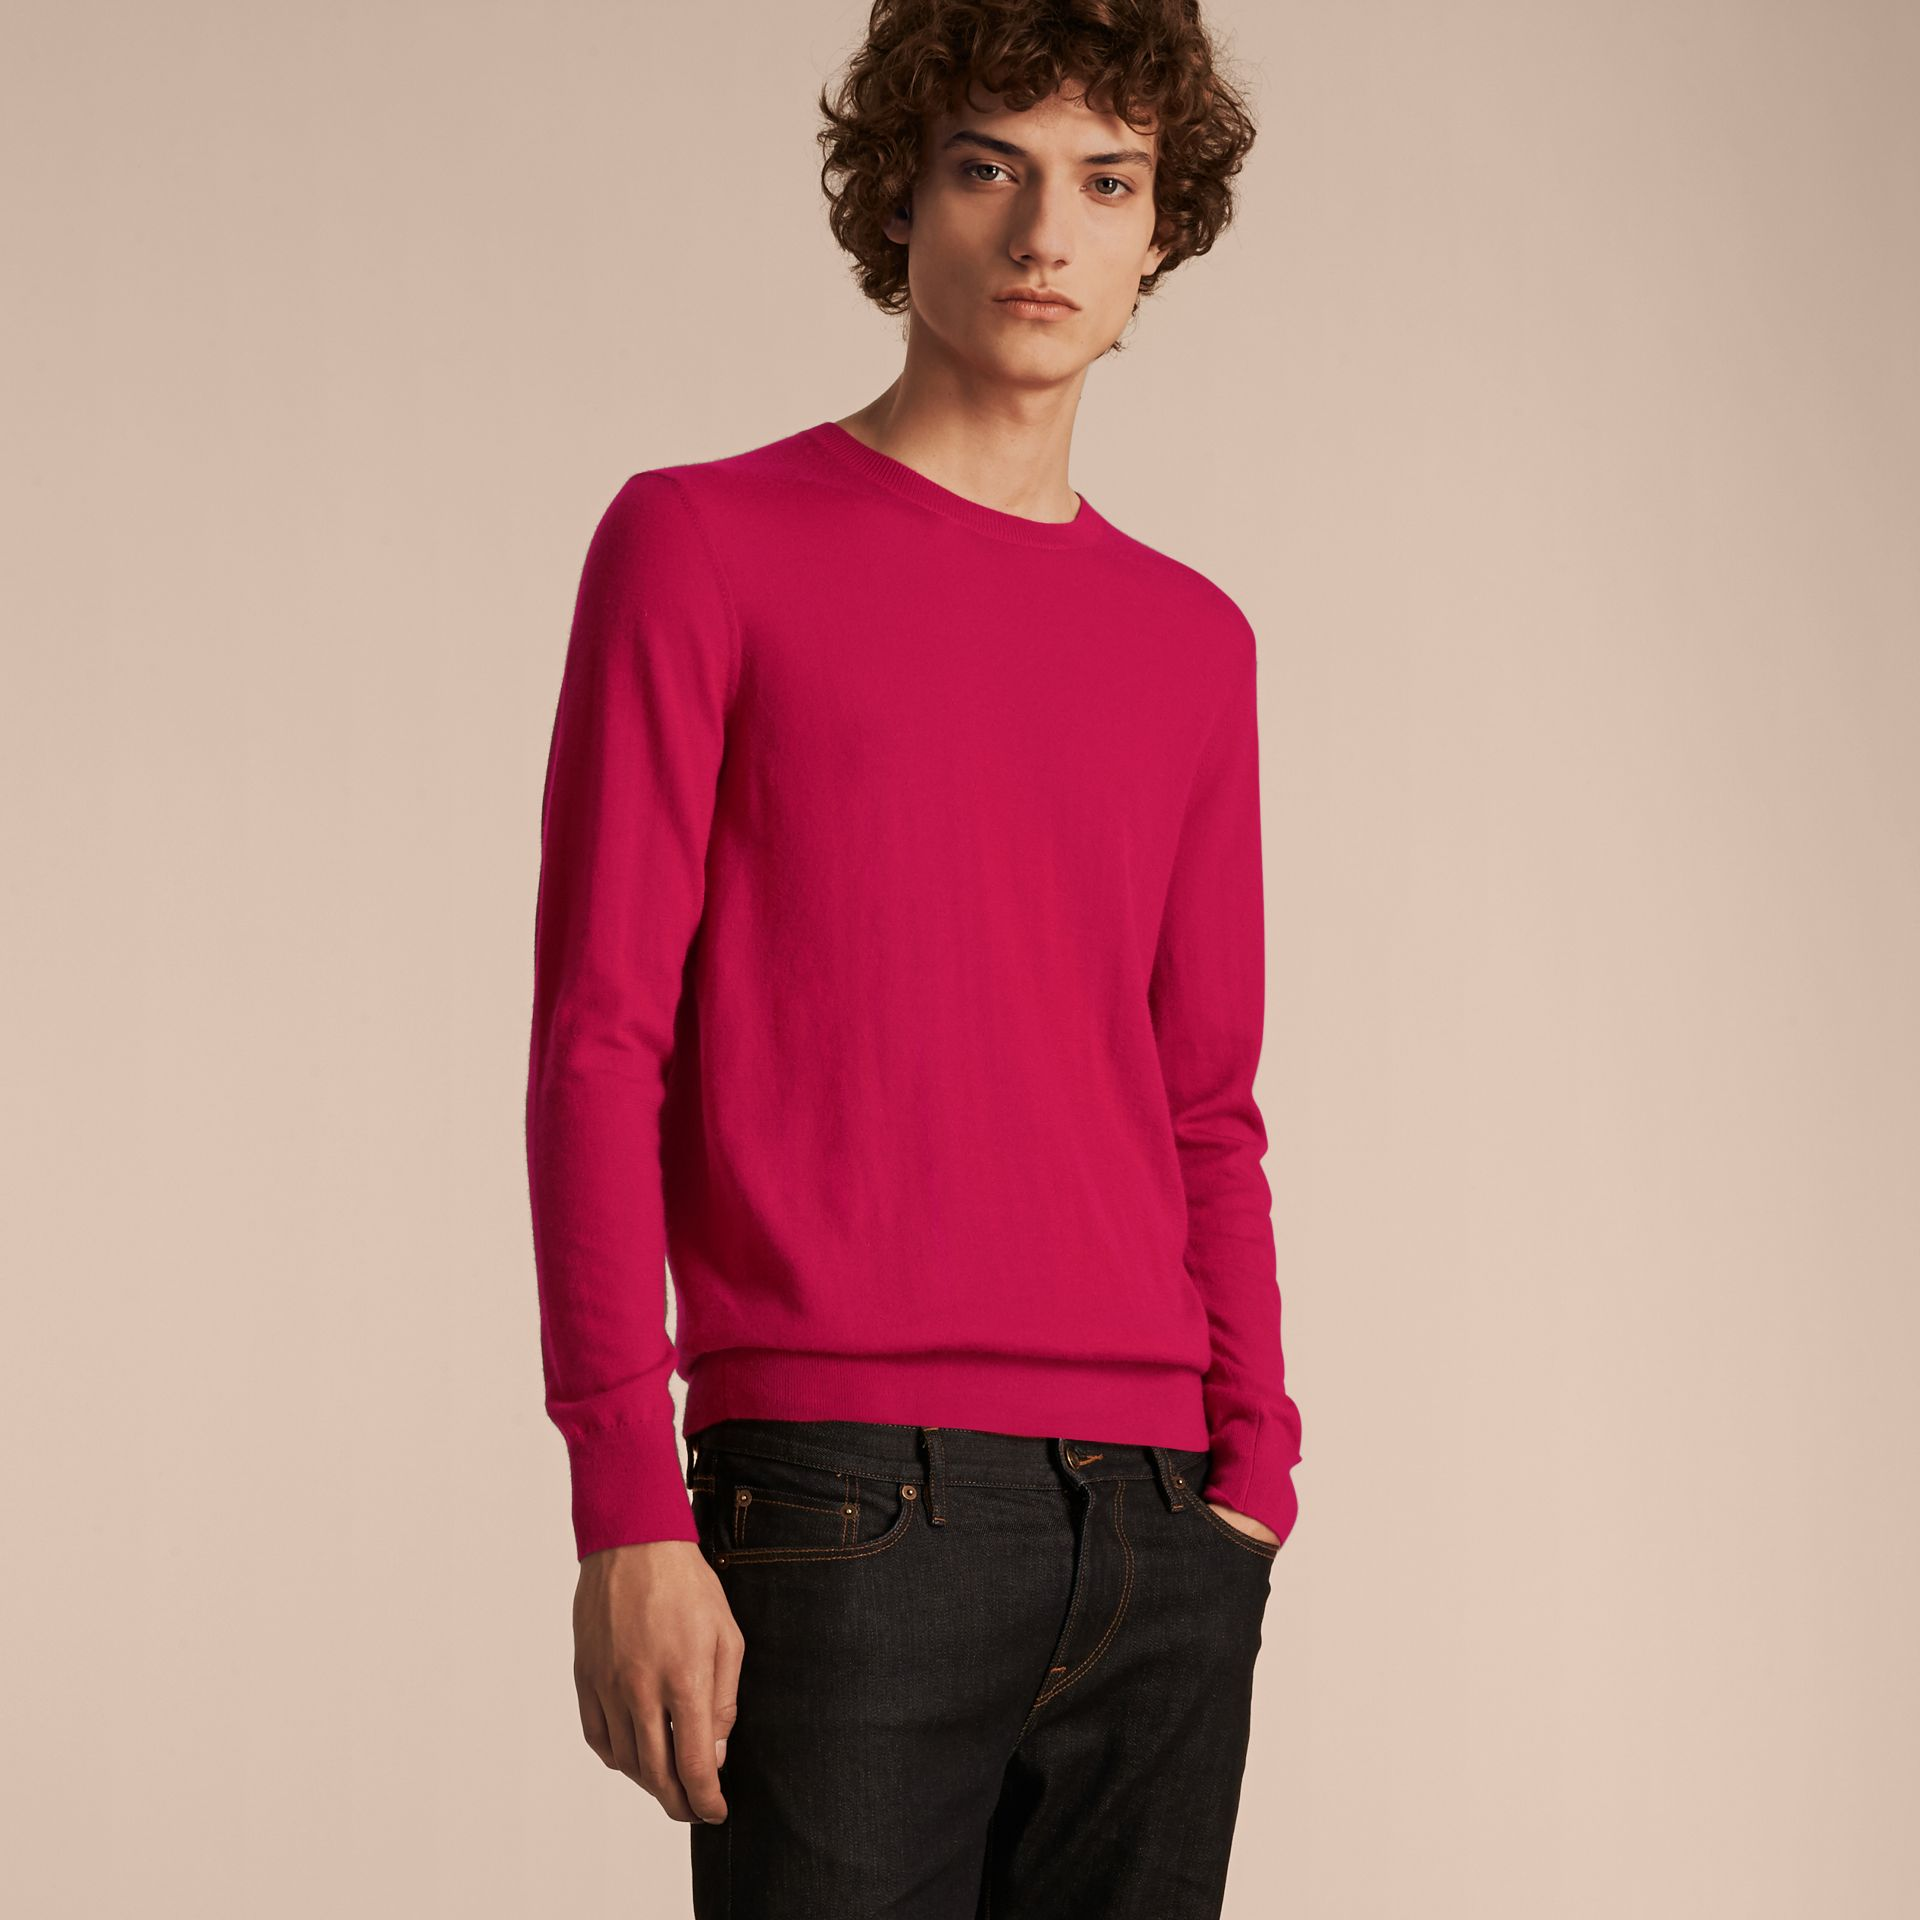 Bright pink Lightweight Crew Neck Cashmere Sweater with Check Trim Bright Pink - gallery image 6